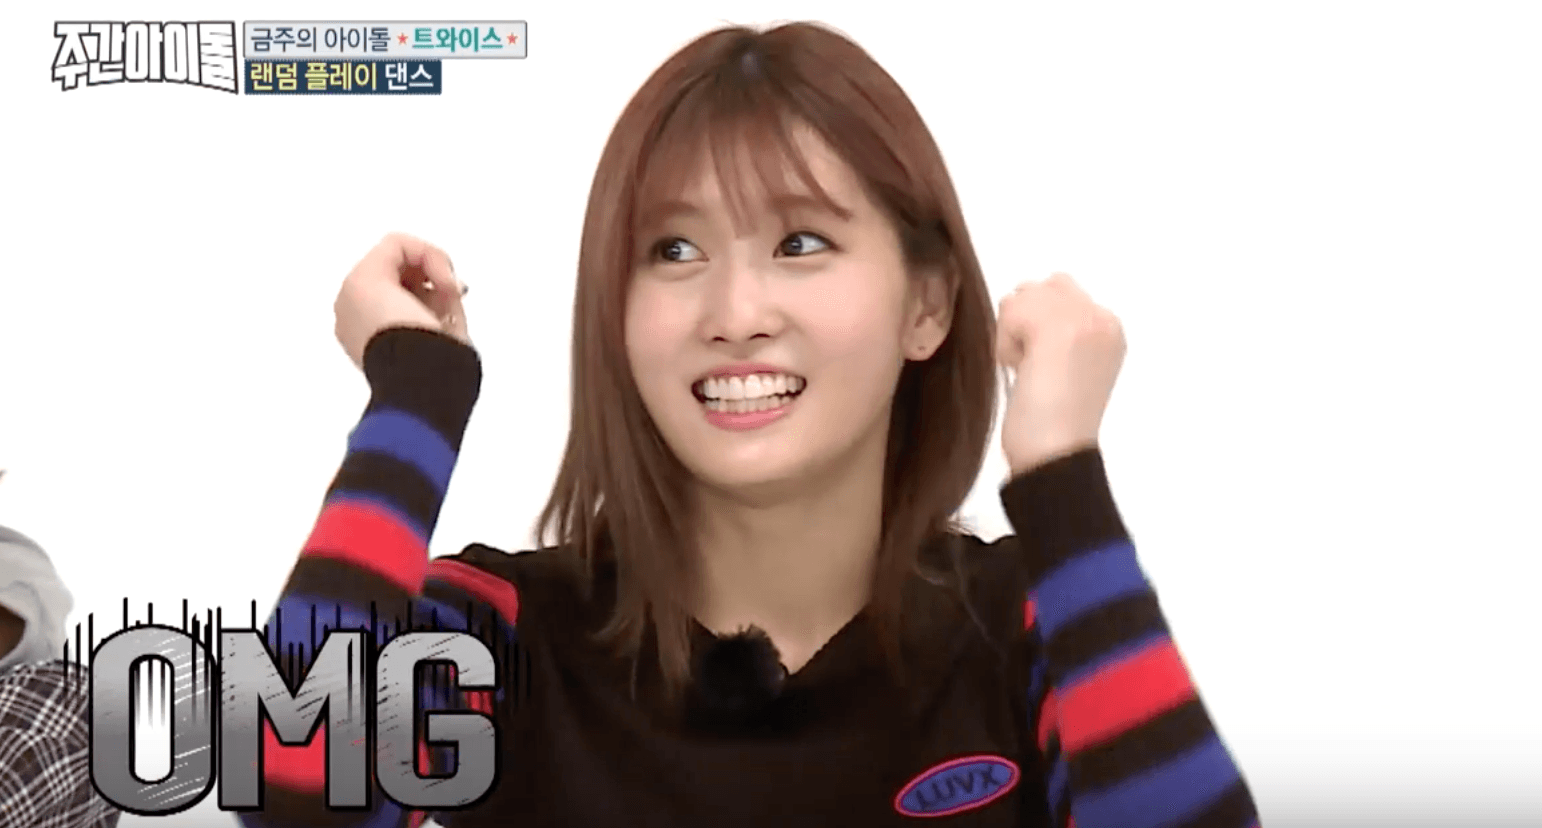 Weekly Idol Director Scores A Date With TWICEs Momo